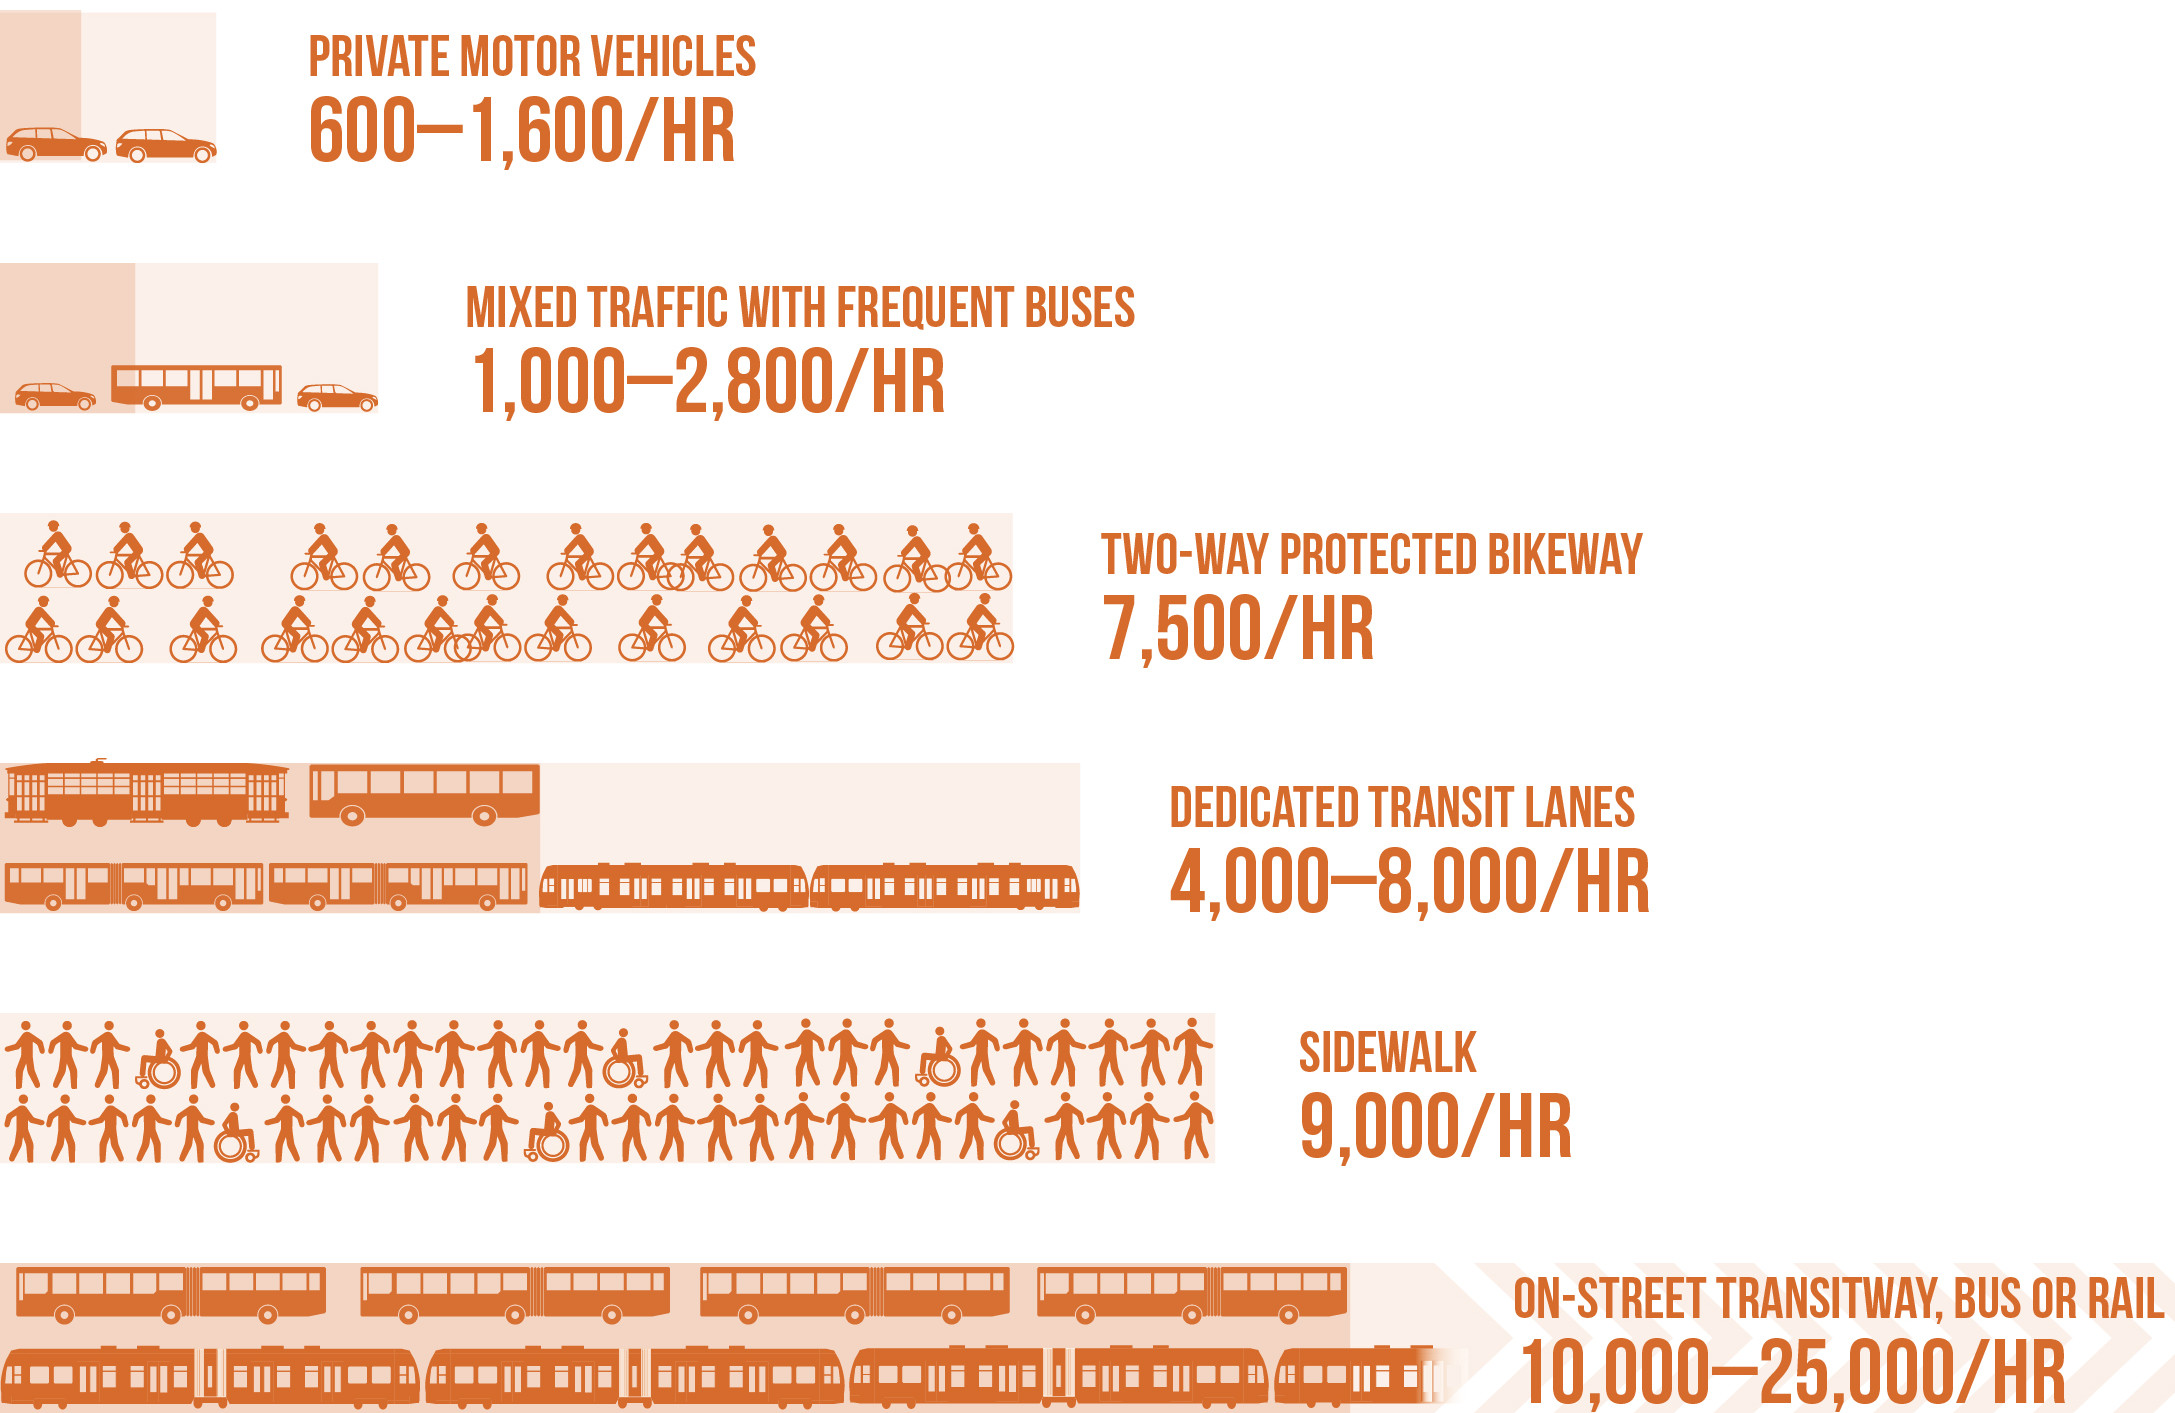 Picture Credit: National Association of City Transportation Officials - Transit Street Design Guide